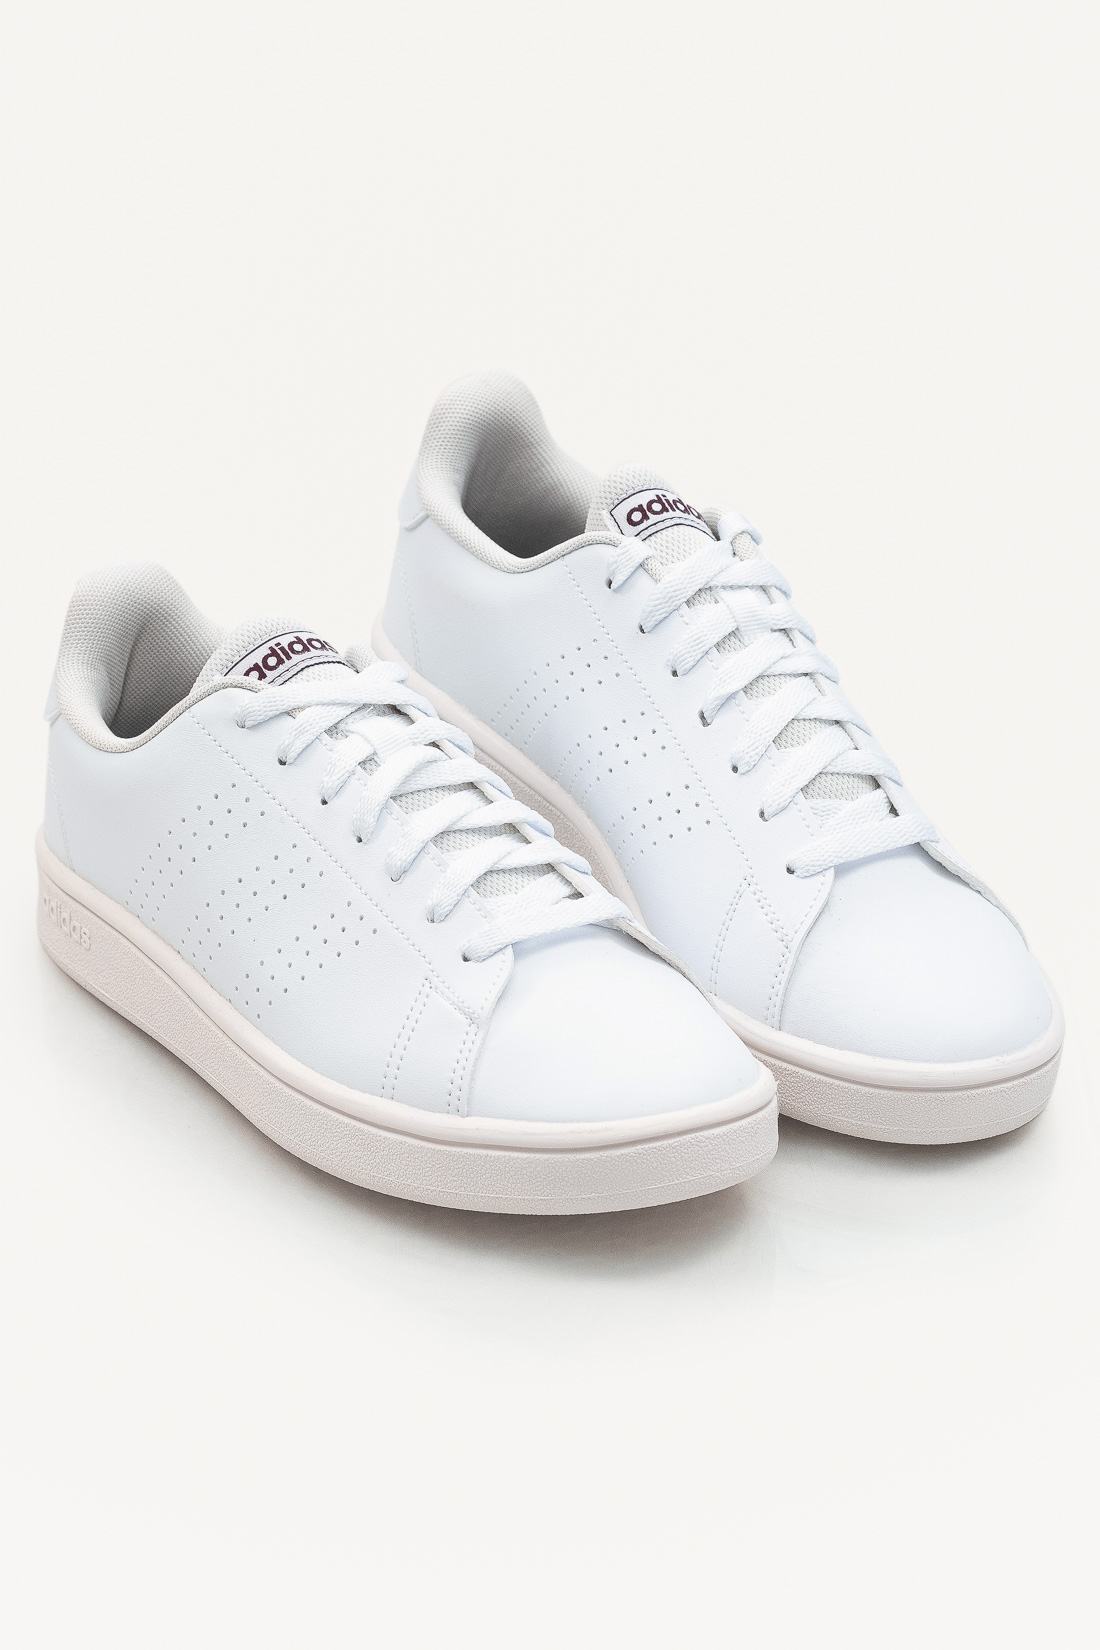 Tenis Casual Adidas Advantage Base